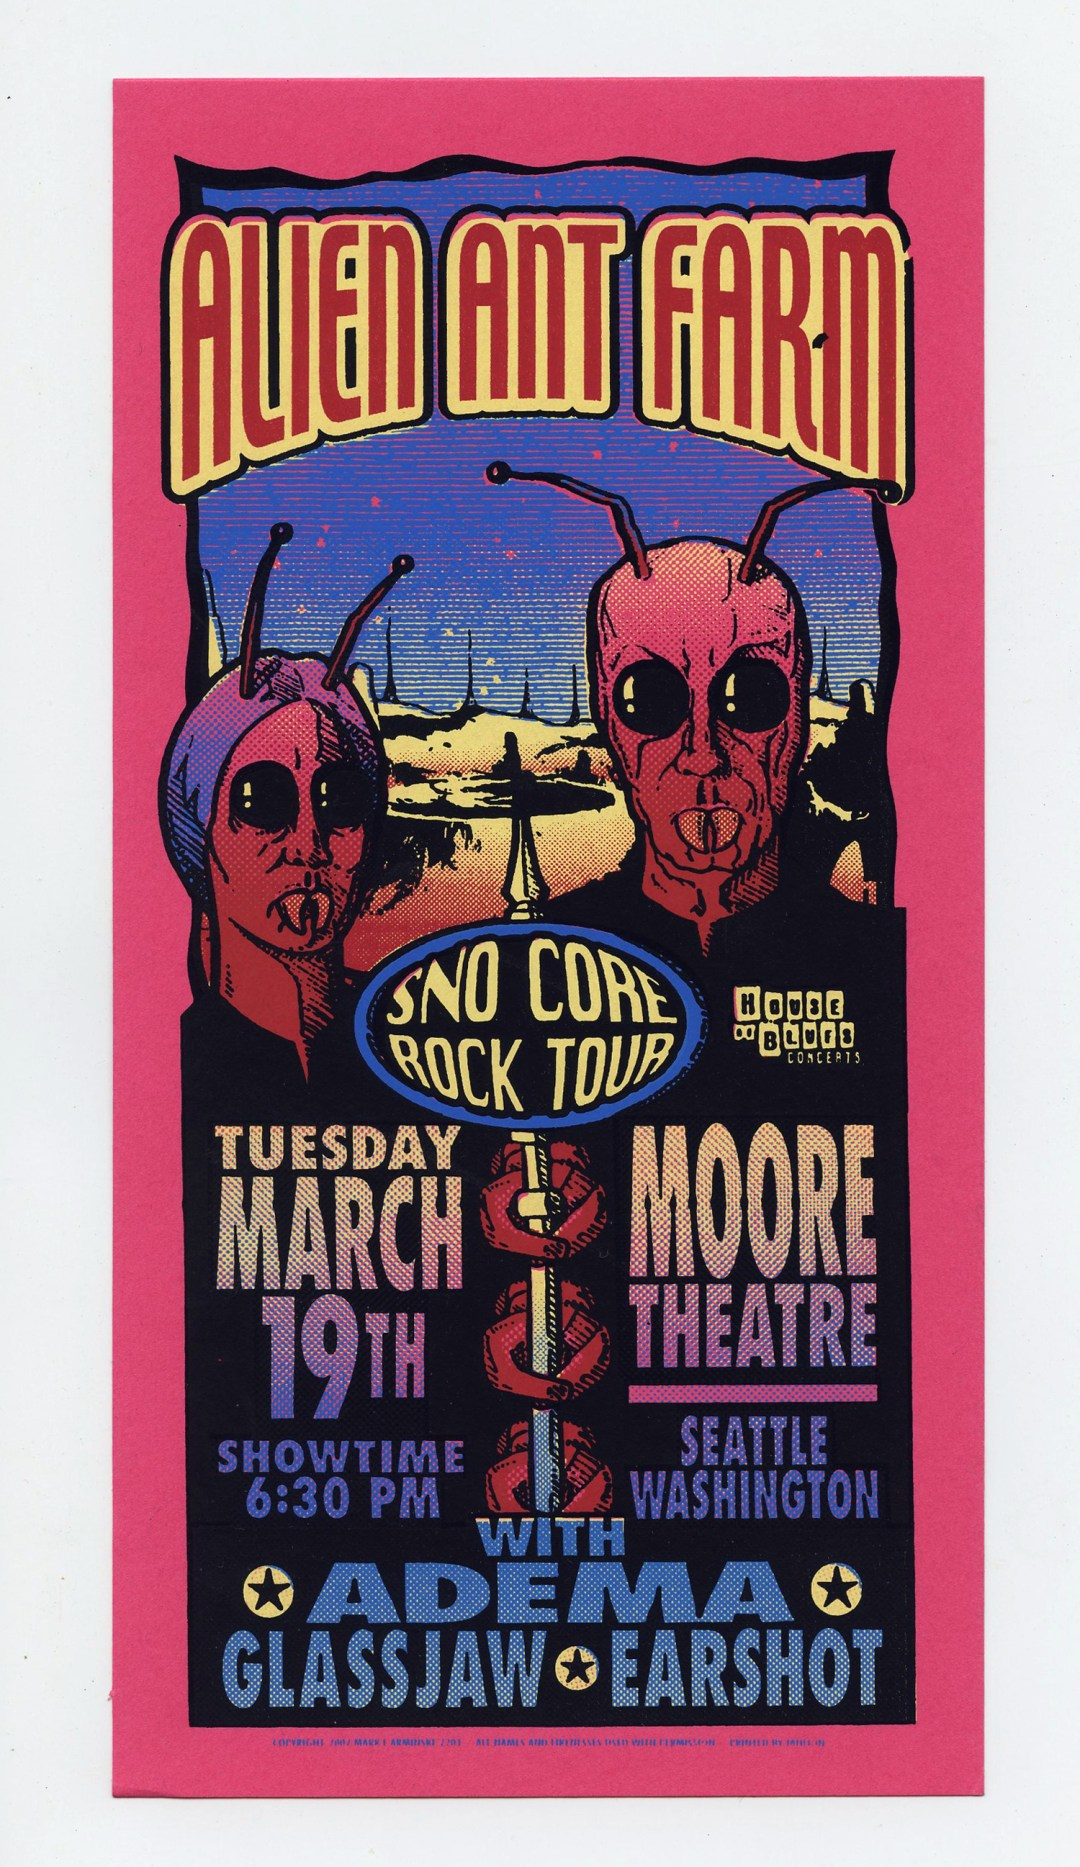 Alien Ant Farm Handbill Sno Core Rock Tour 2002 Mar 19